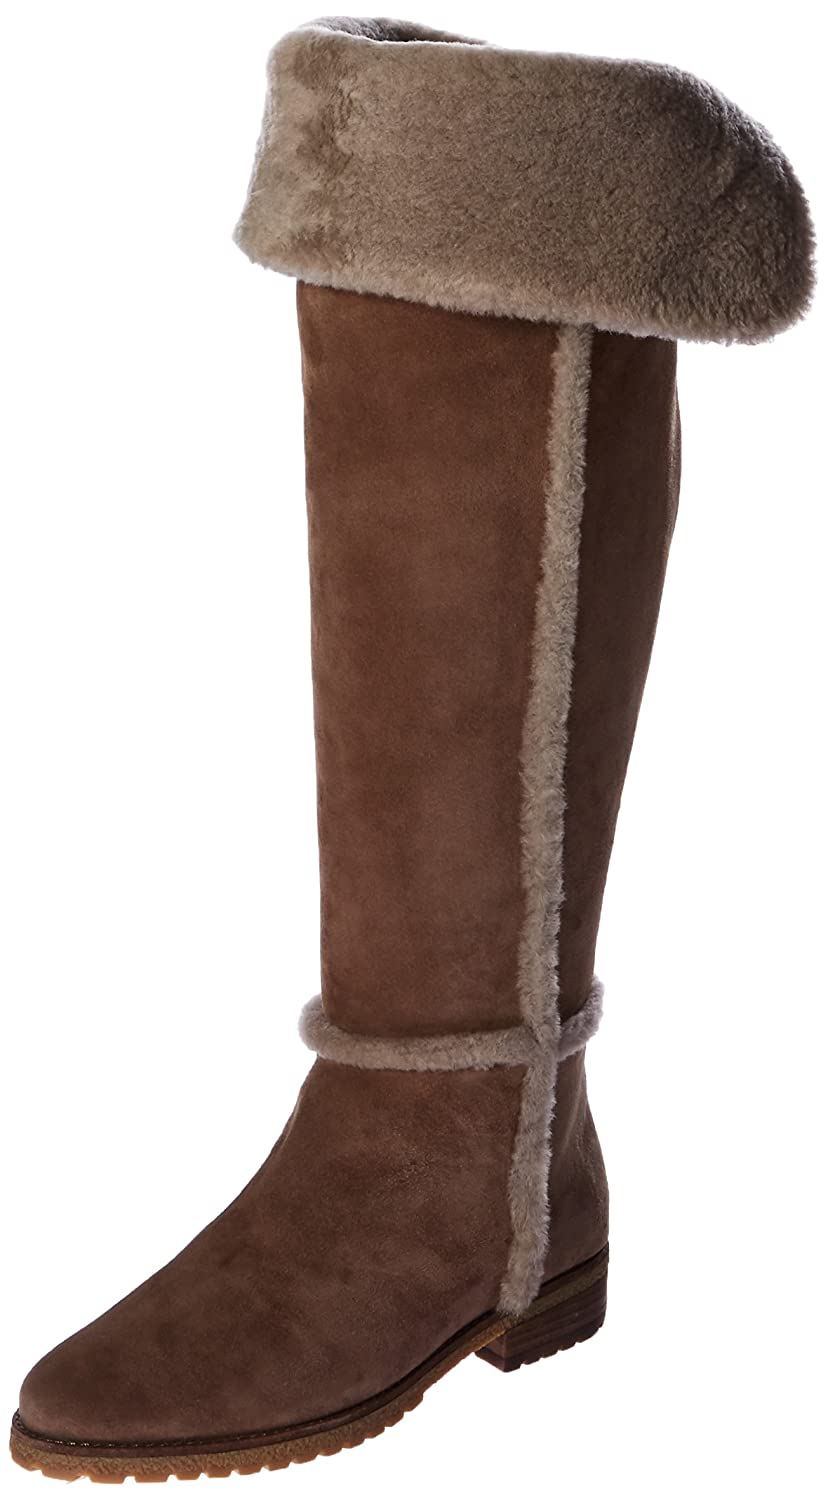 FRYE Women's Tamara Shearling OTK Winter Boot B01CH9UKGK 9.5 B(M) US|Taupe